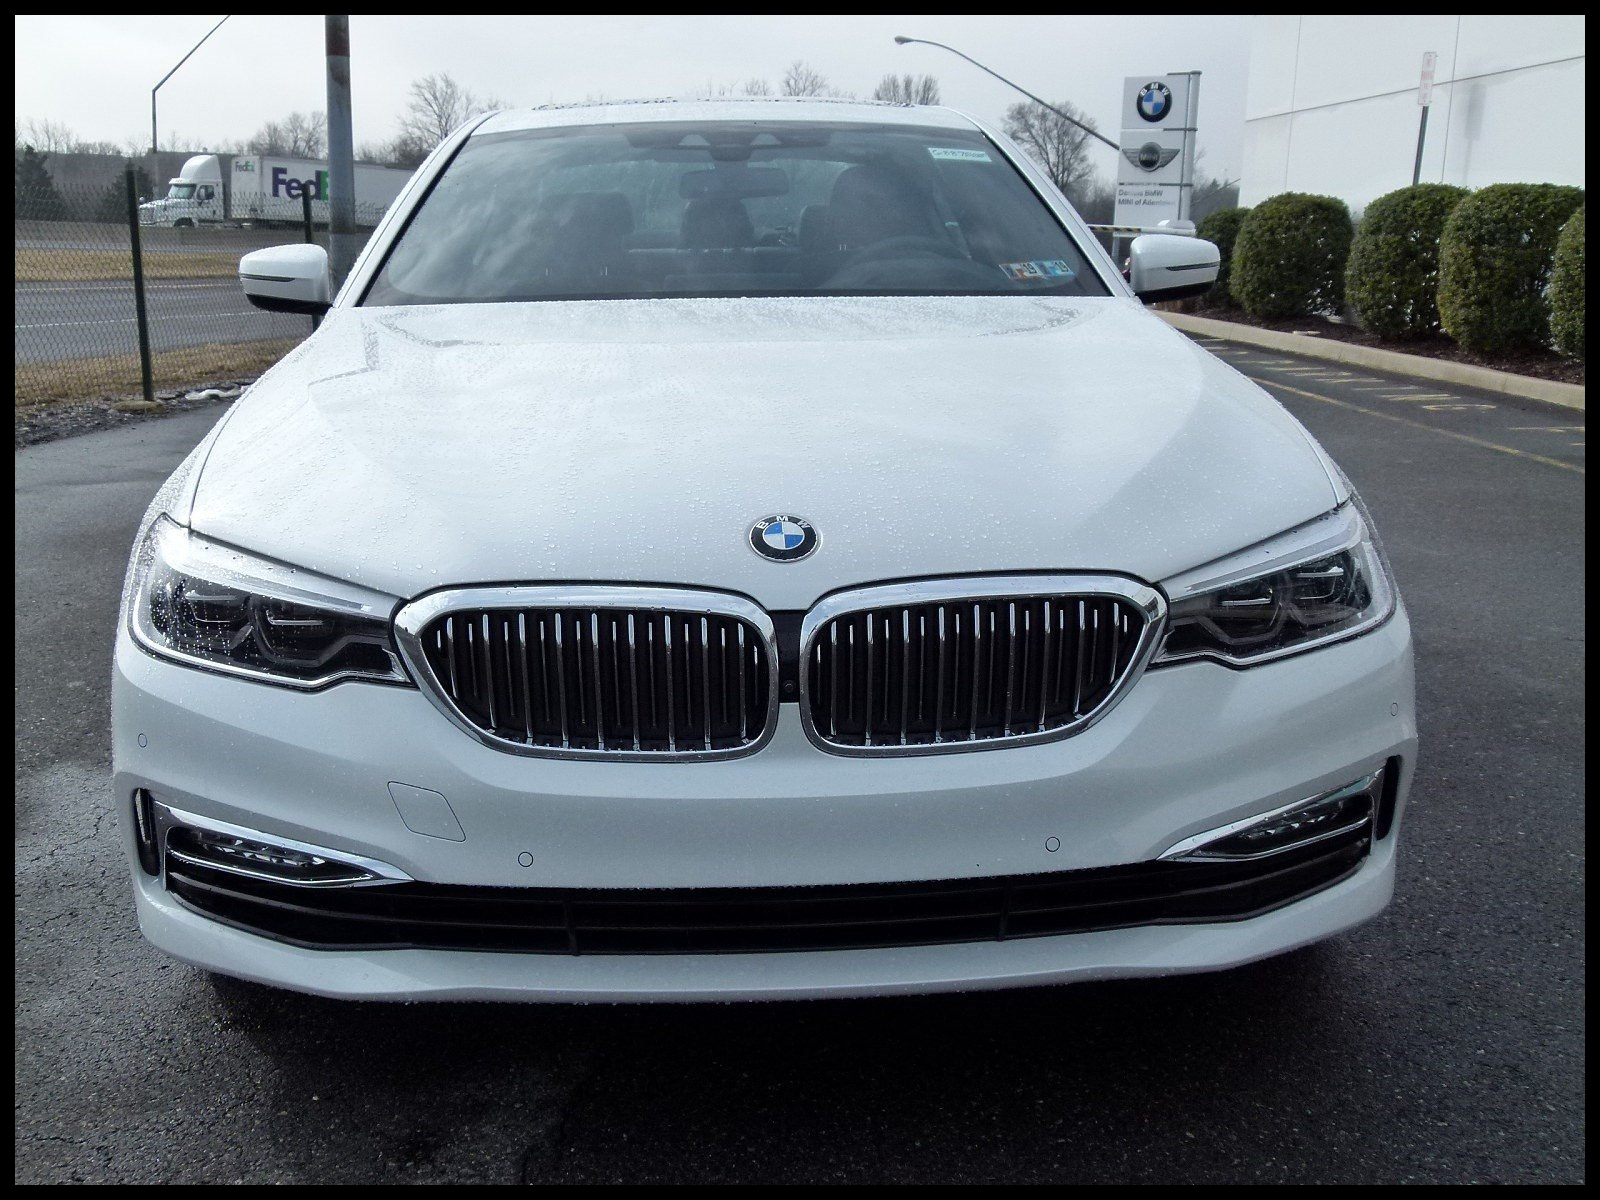 2017 Bmw 540i 0 60 Lovely Pre Owned 2017 Bmw 5 Series 540i Xdrive 4dr Car